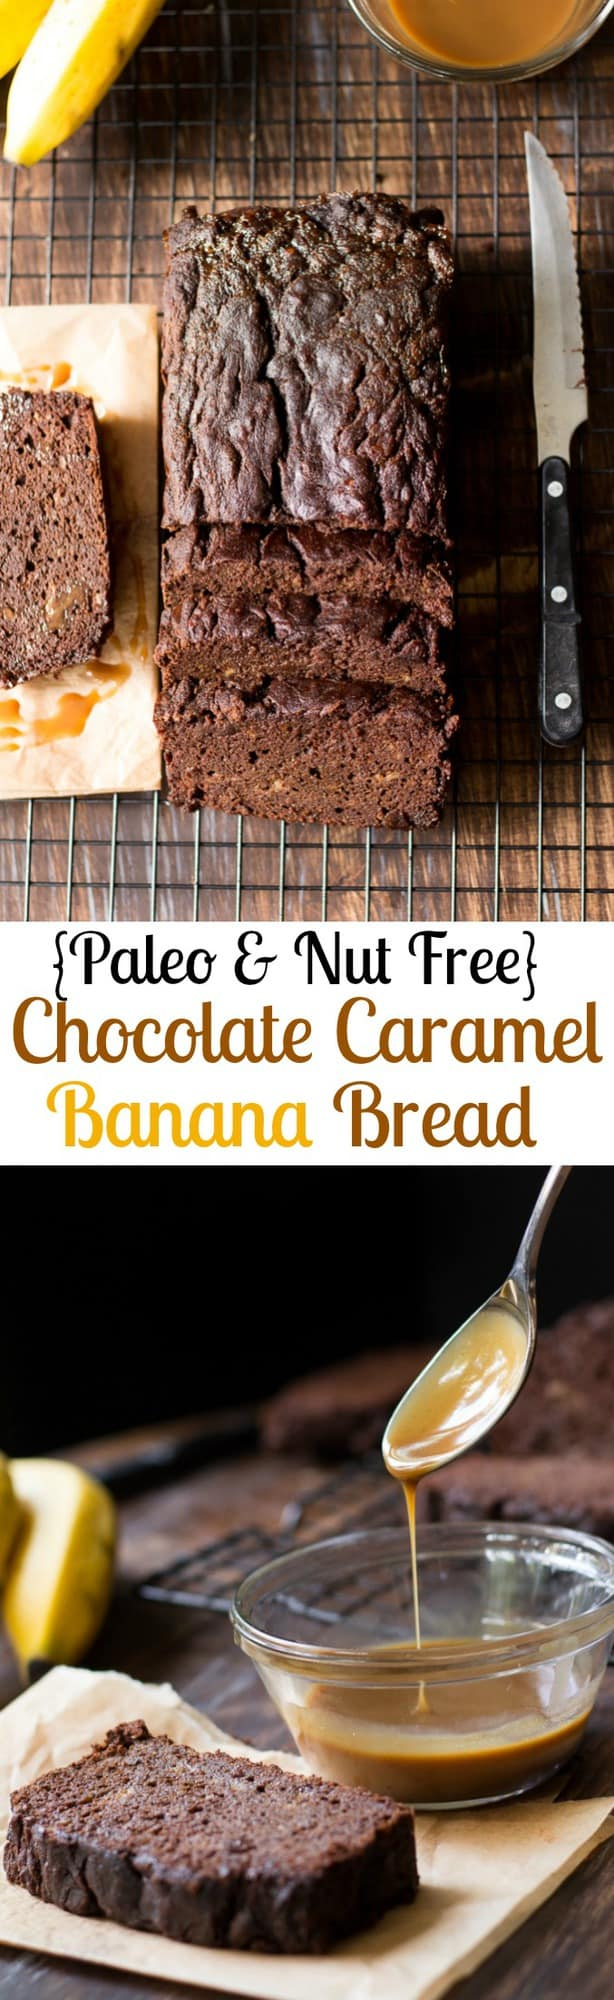 Chocolate Caramel Paleo Banana Bread